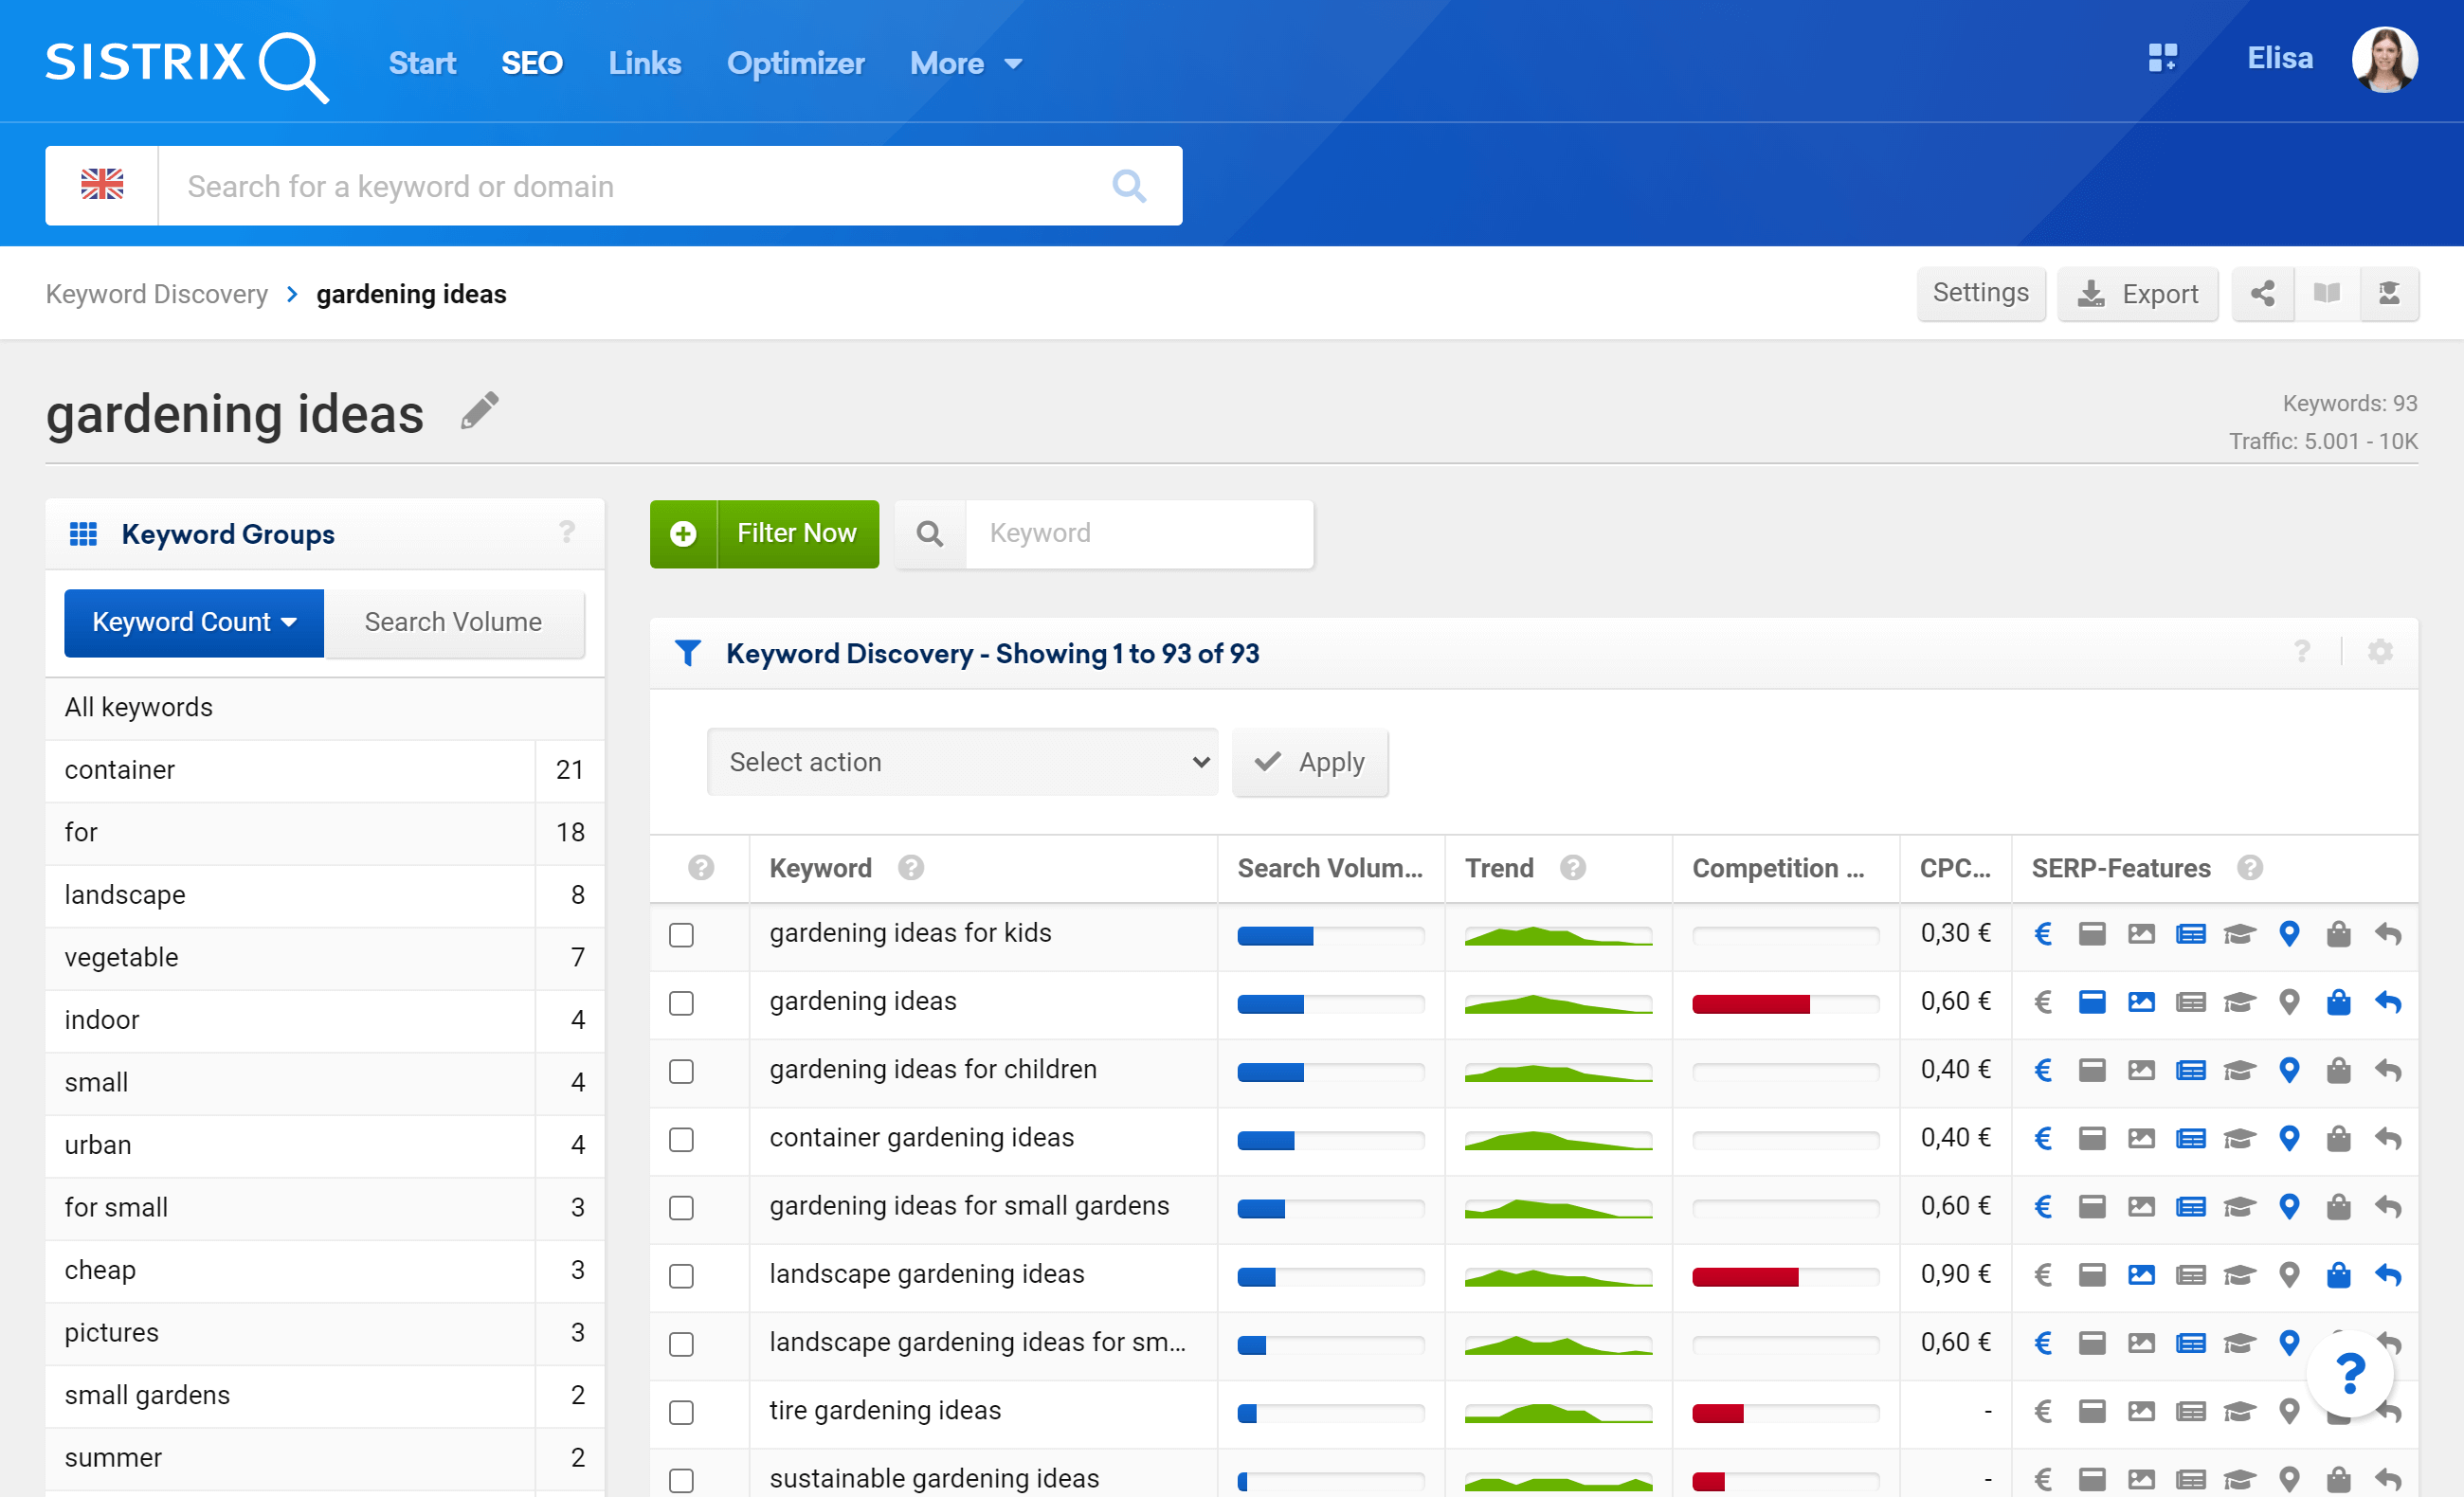 The interface of the Keyword Discovery tool